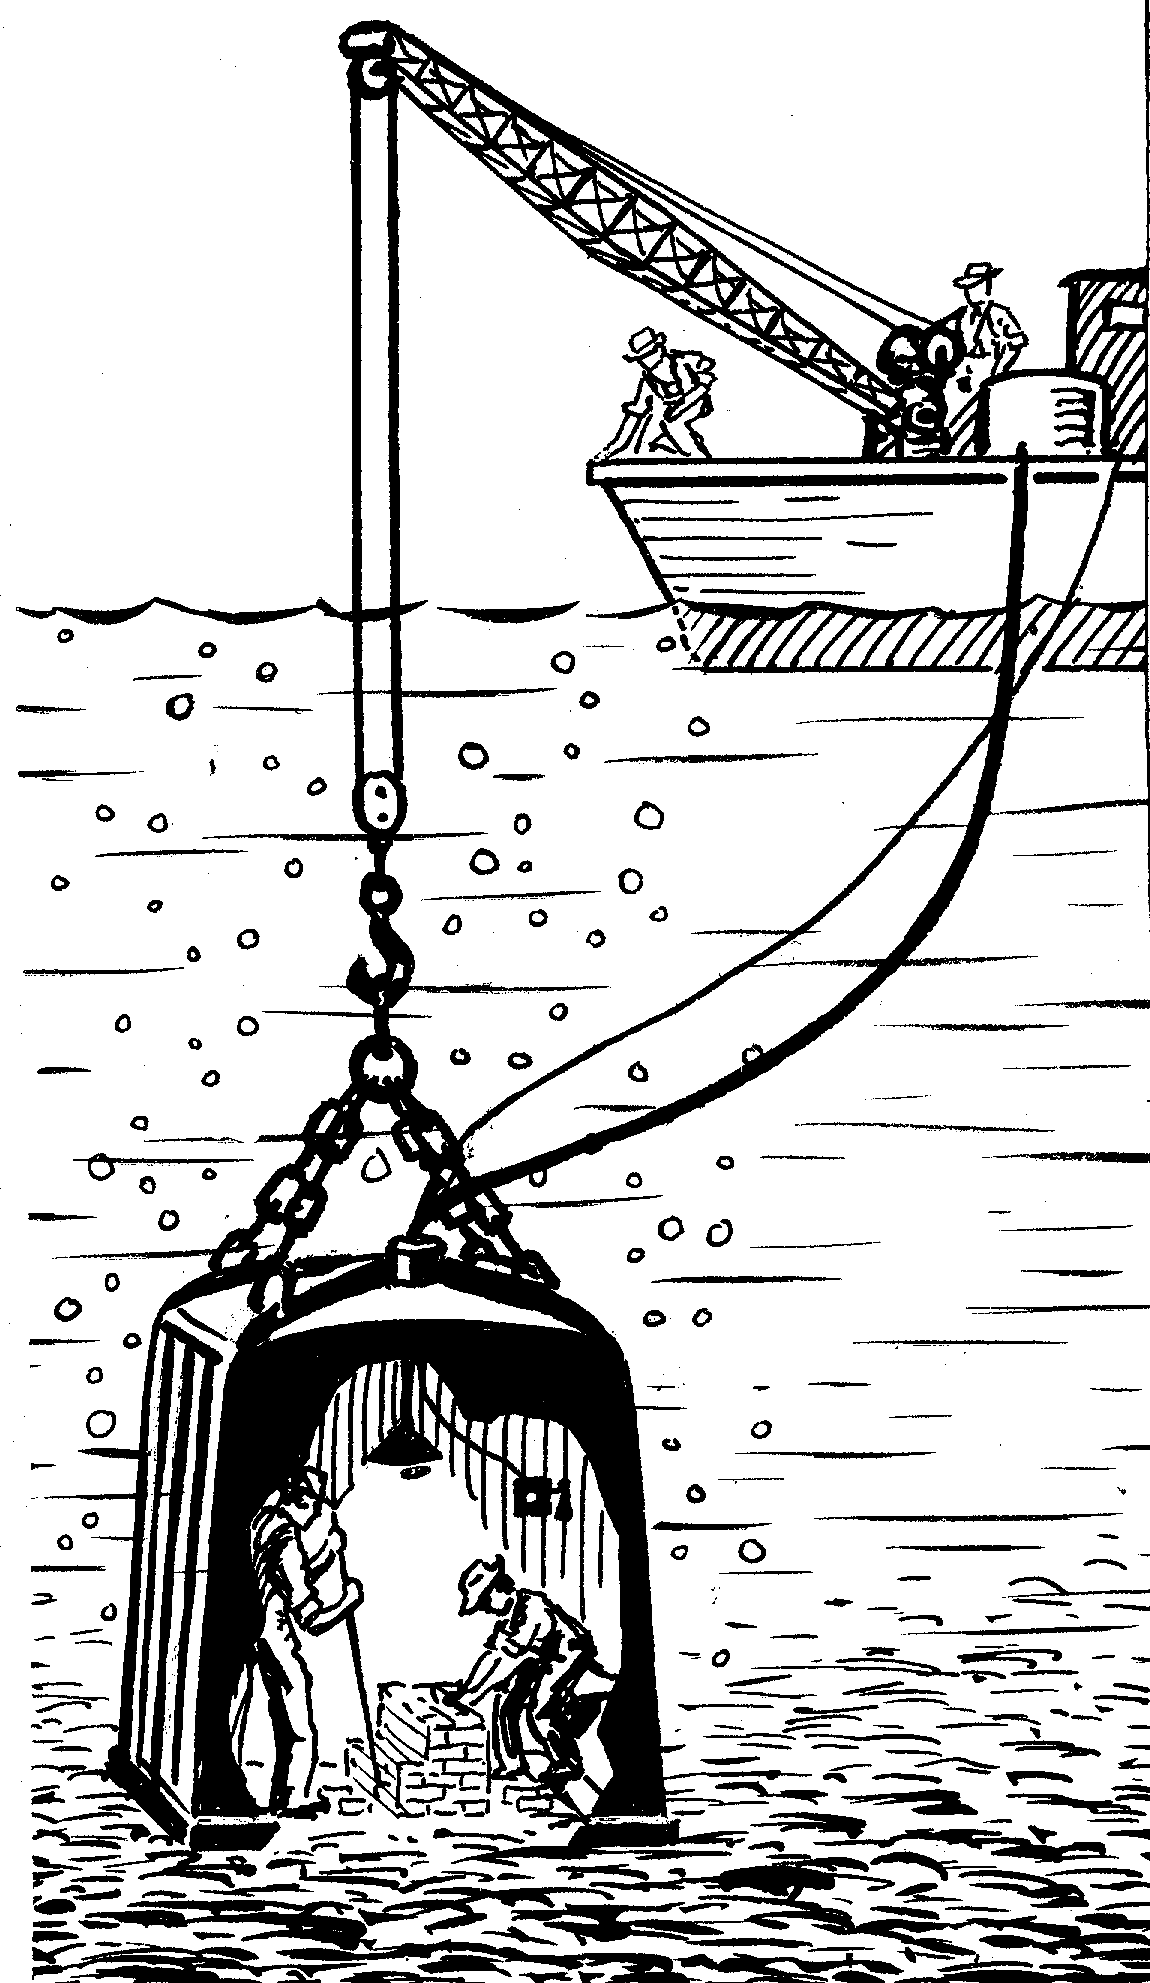 Medium diving bell. Index of collaboration images